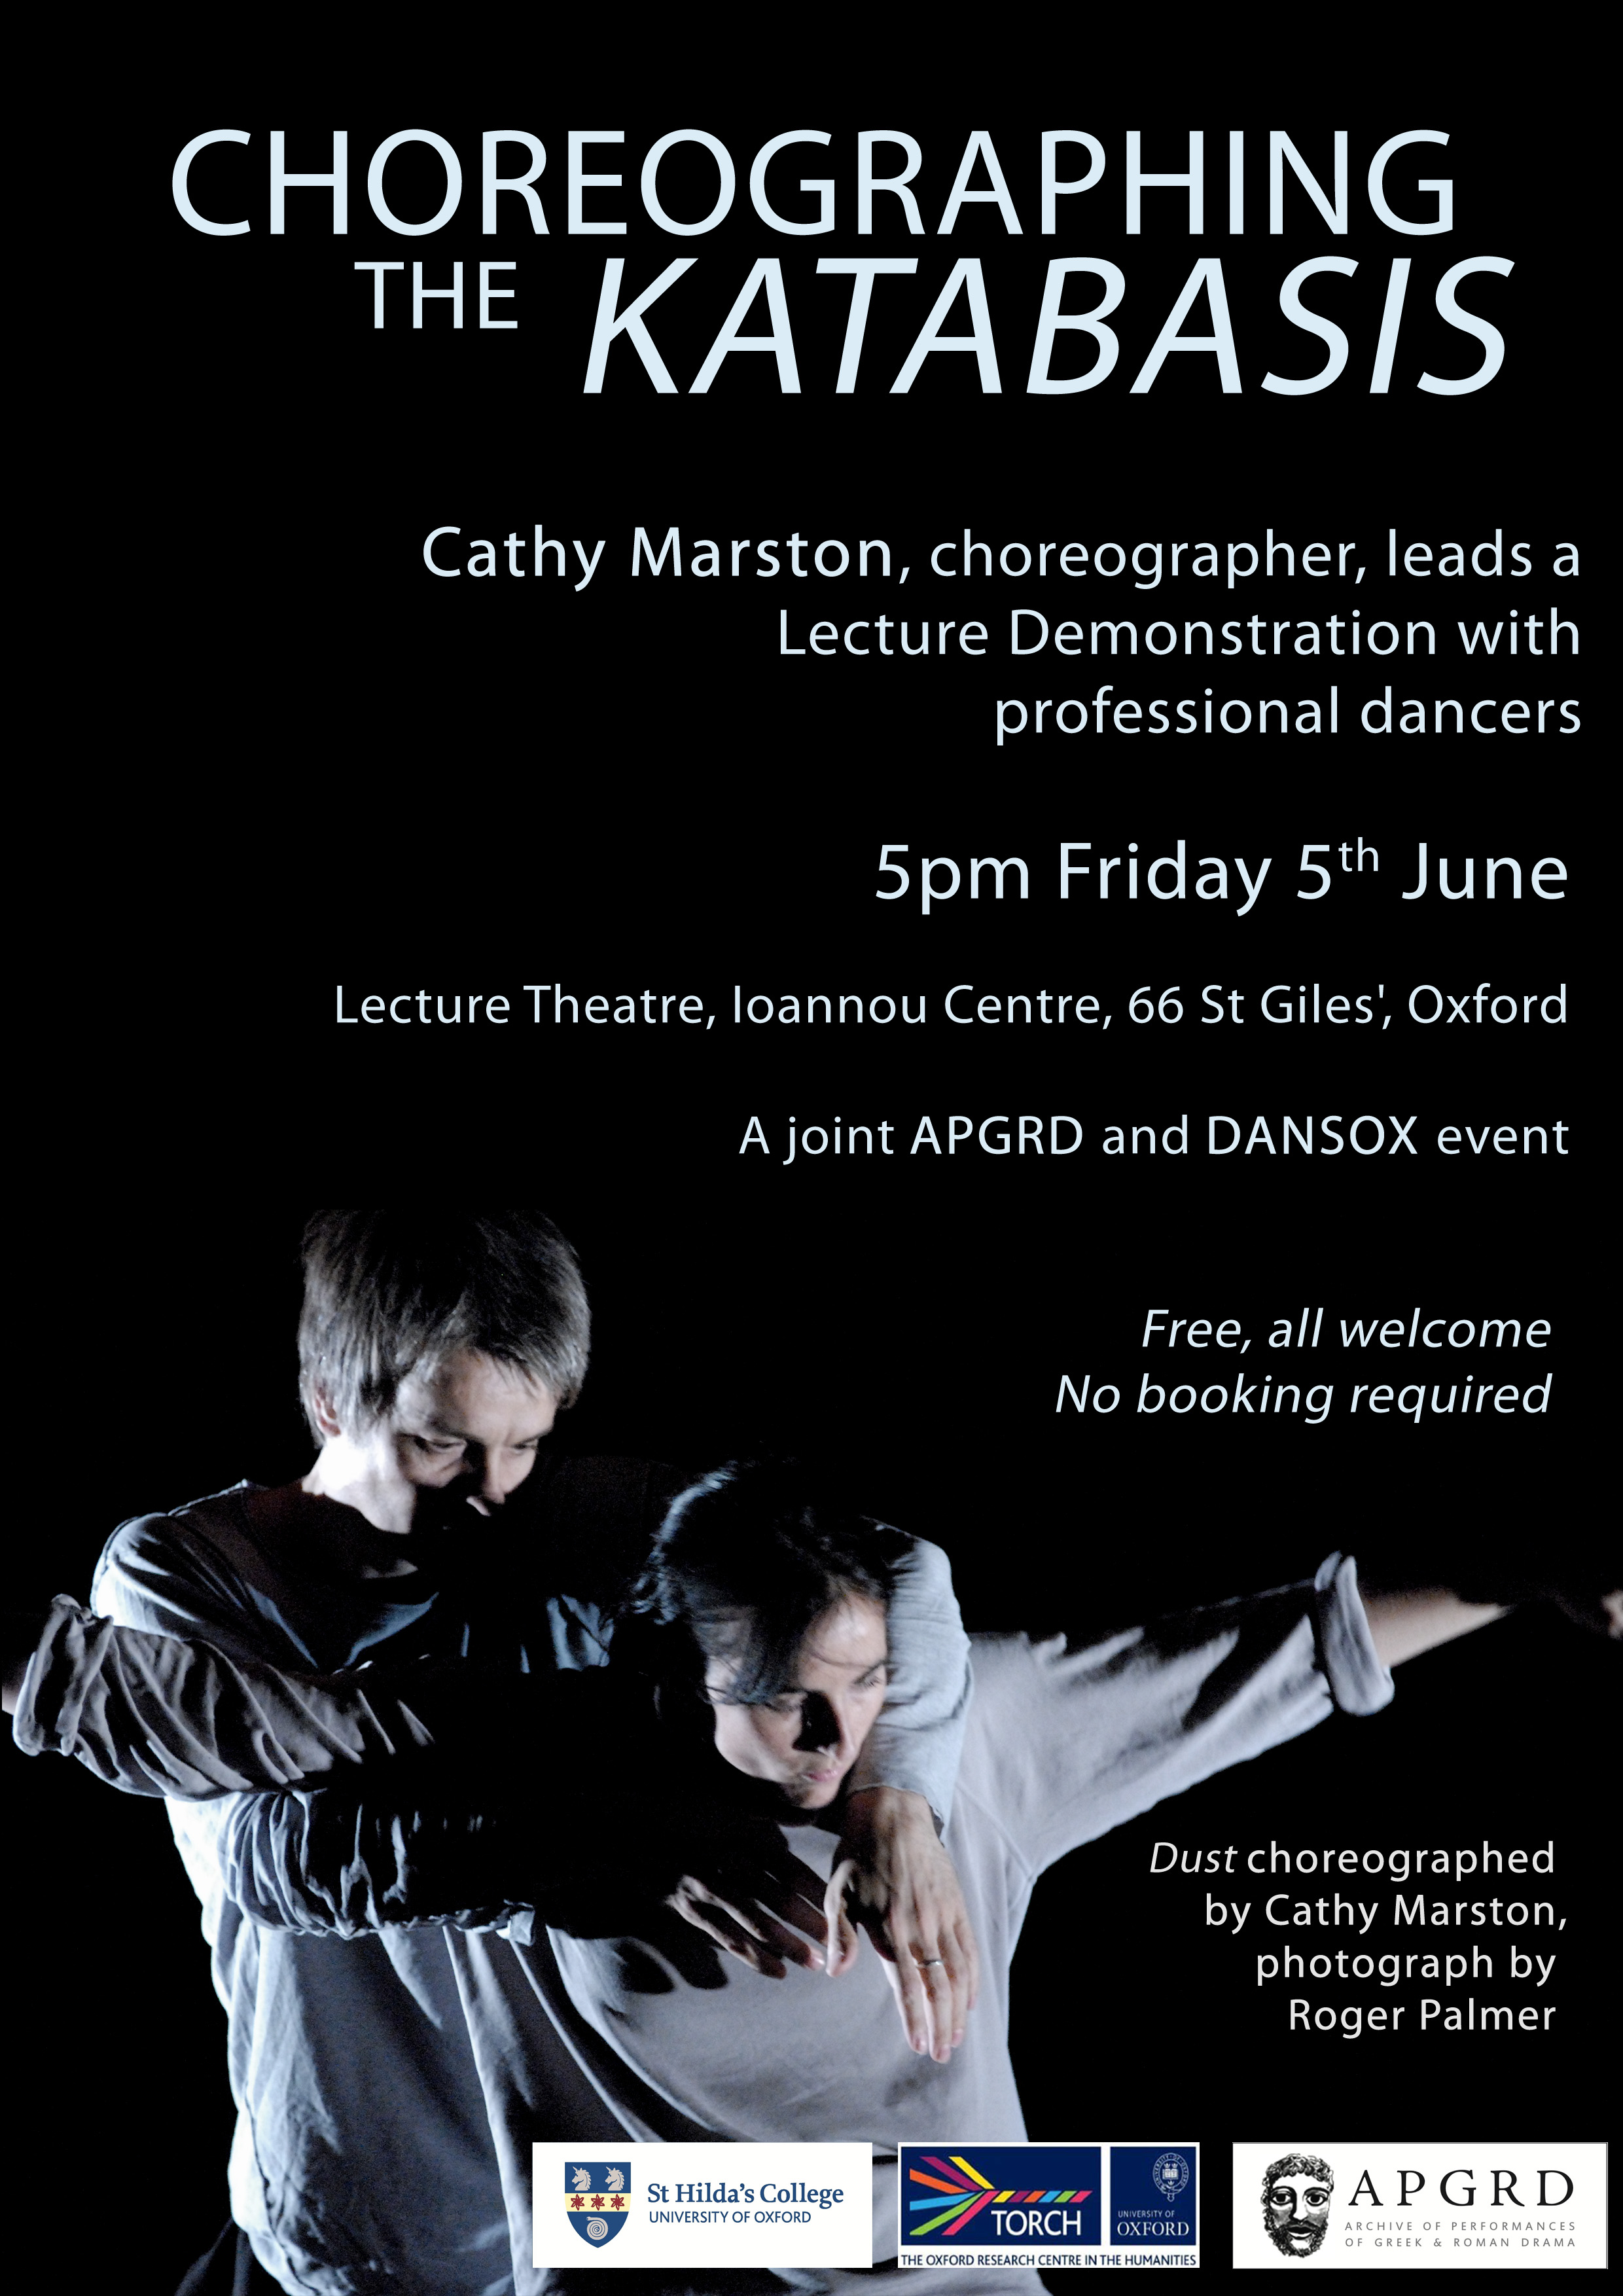 Poster for katabasis event